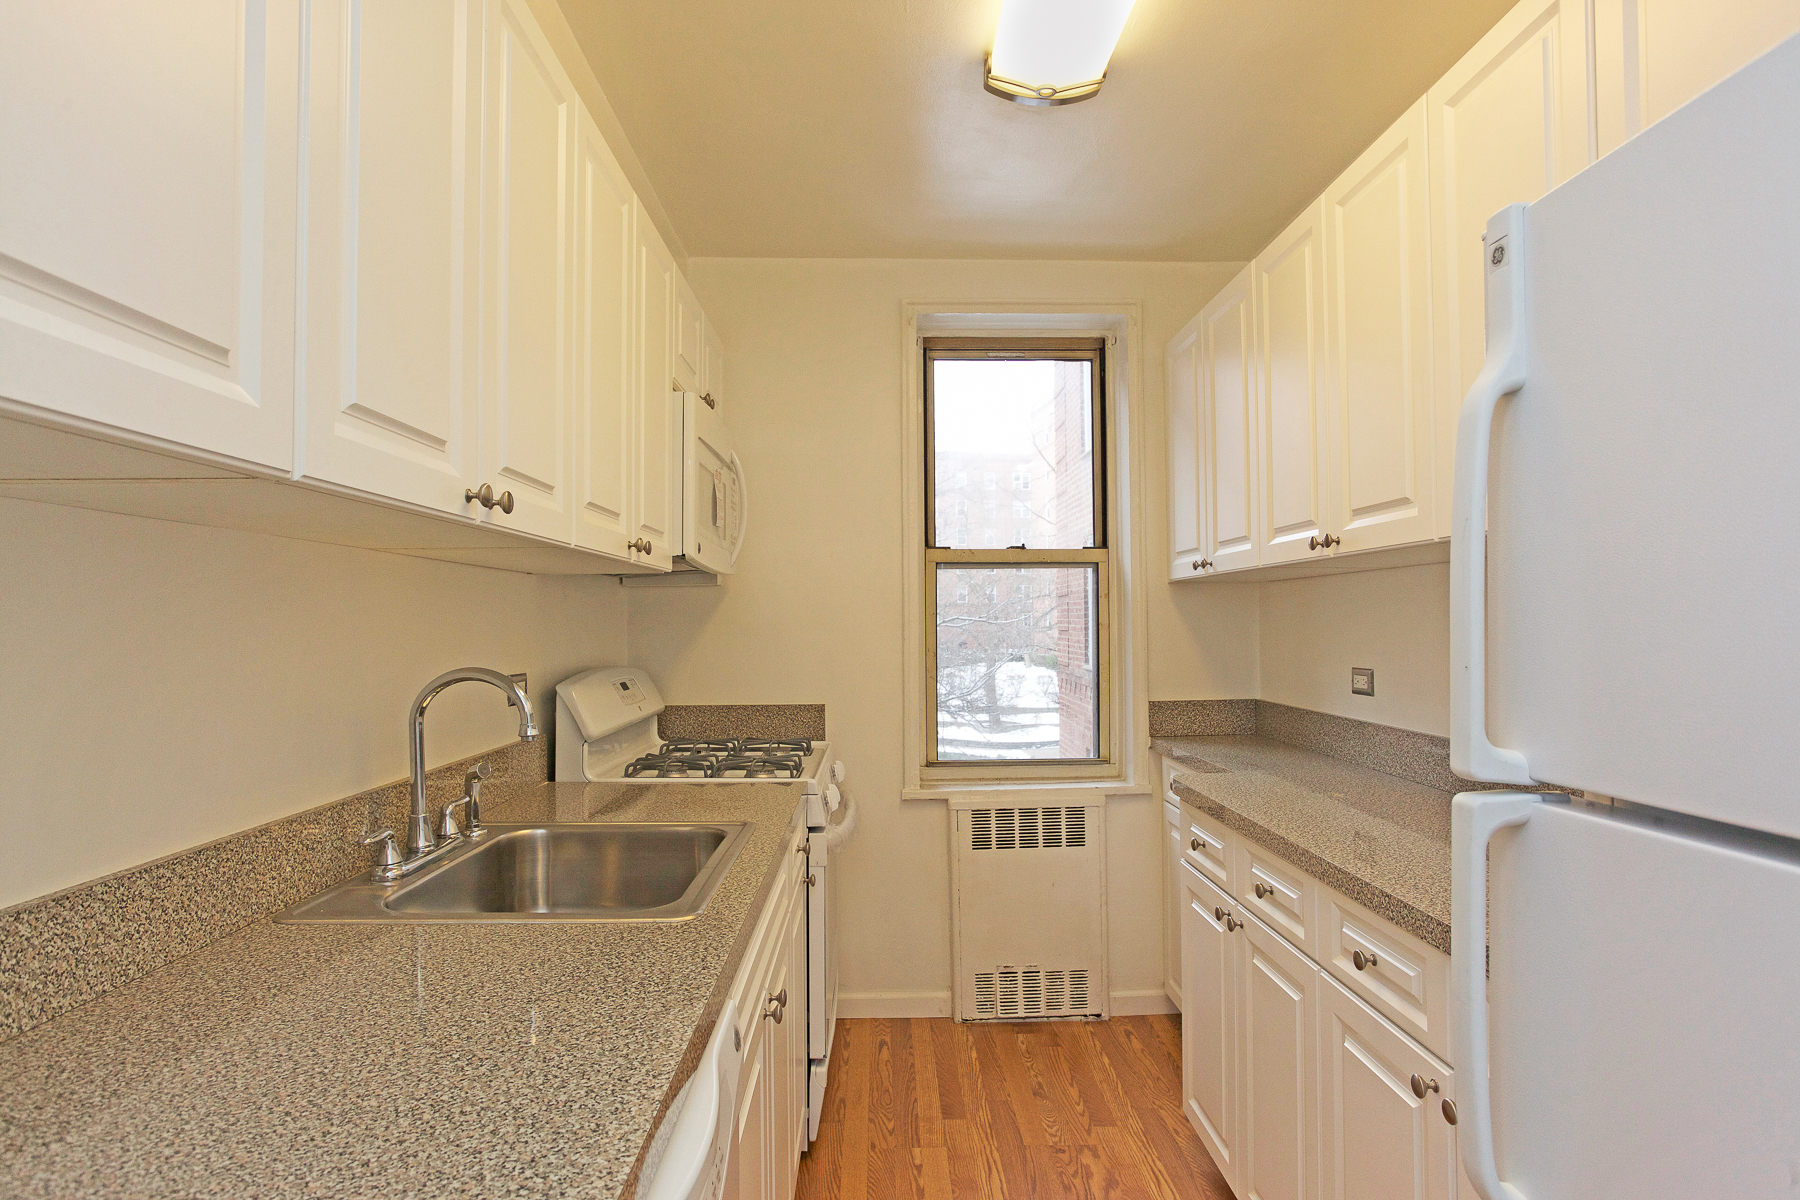 Co-op for Sale at Bright and Renovated 2 BR 5650 Netherland Avenue 2A Riverdale, New York 10471 United States